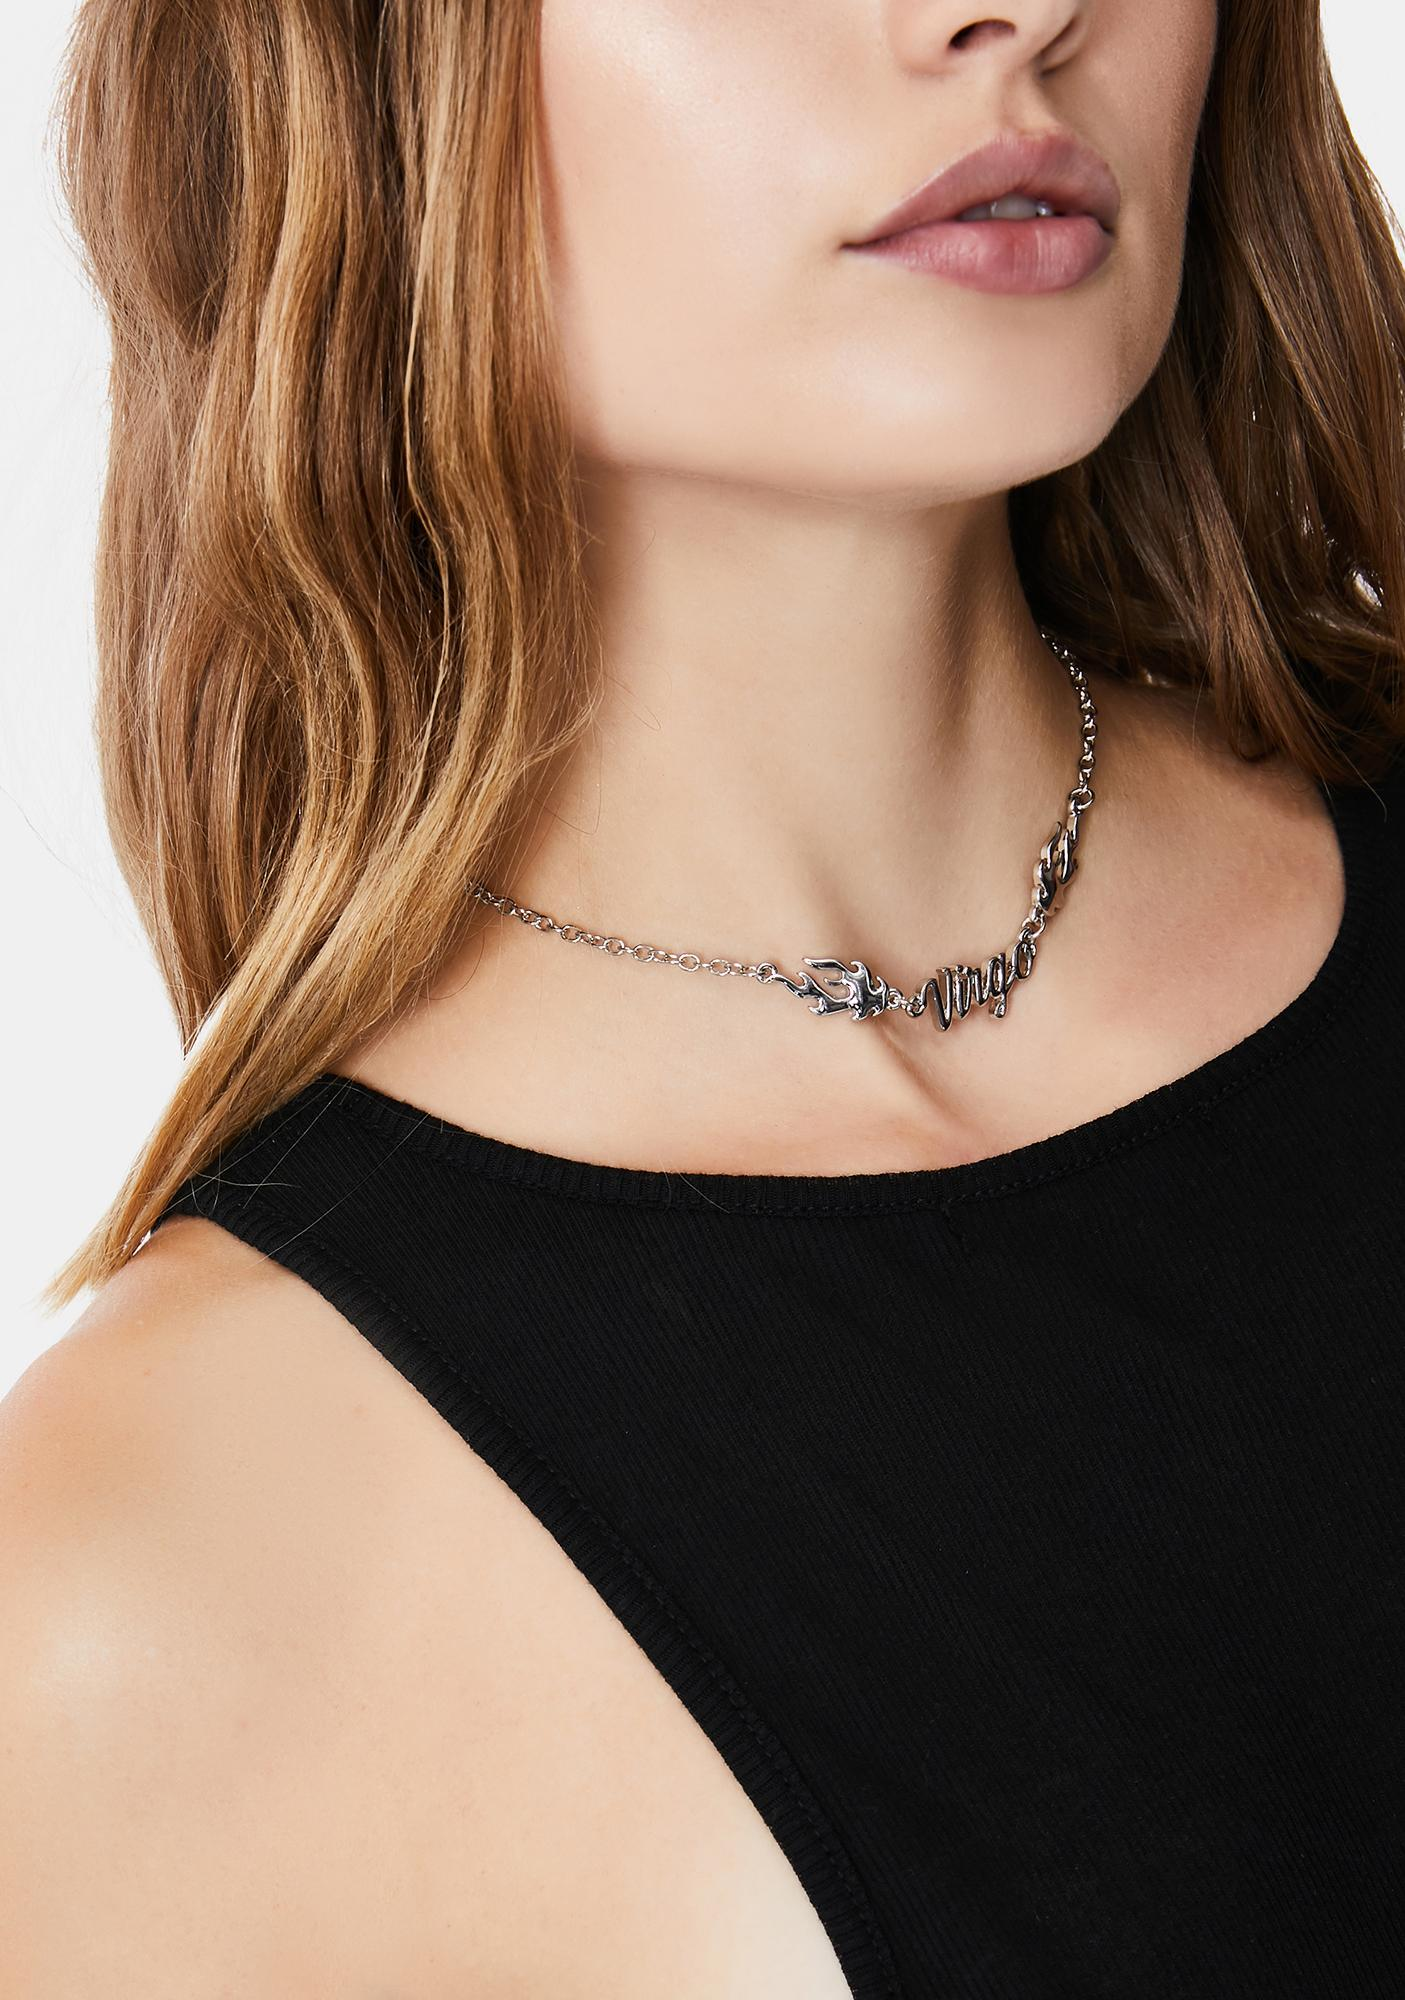 Light Of My Life Chain Necklace